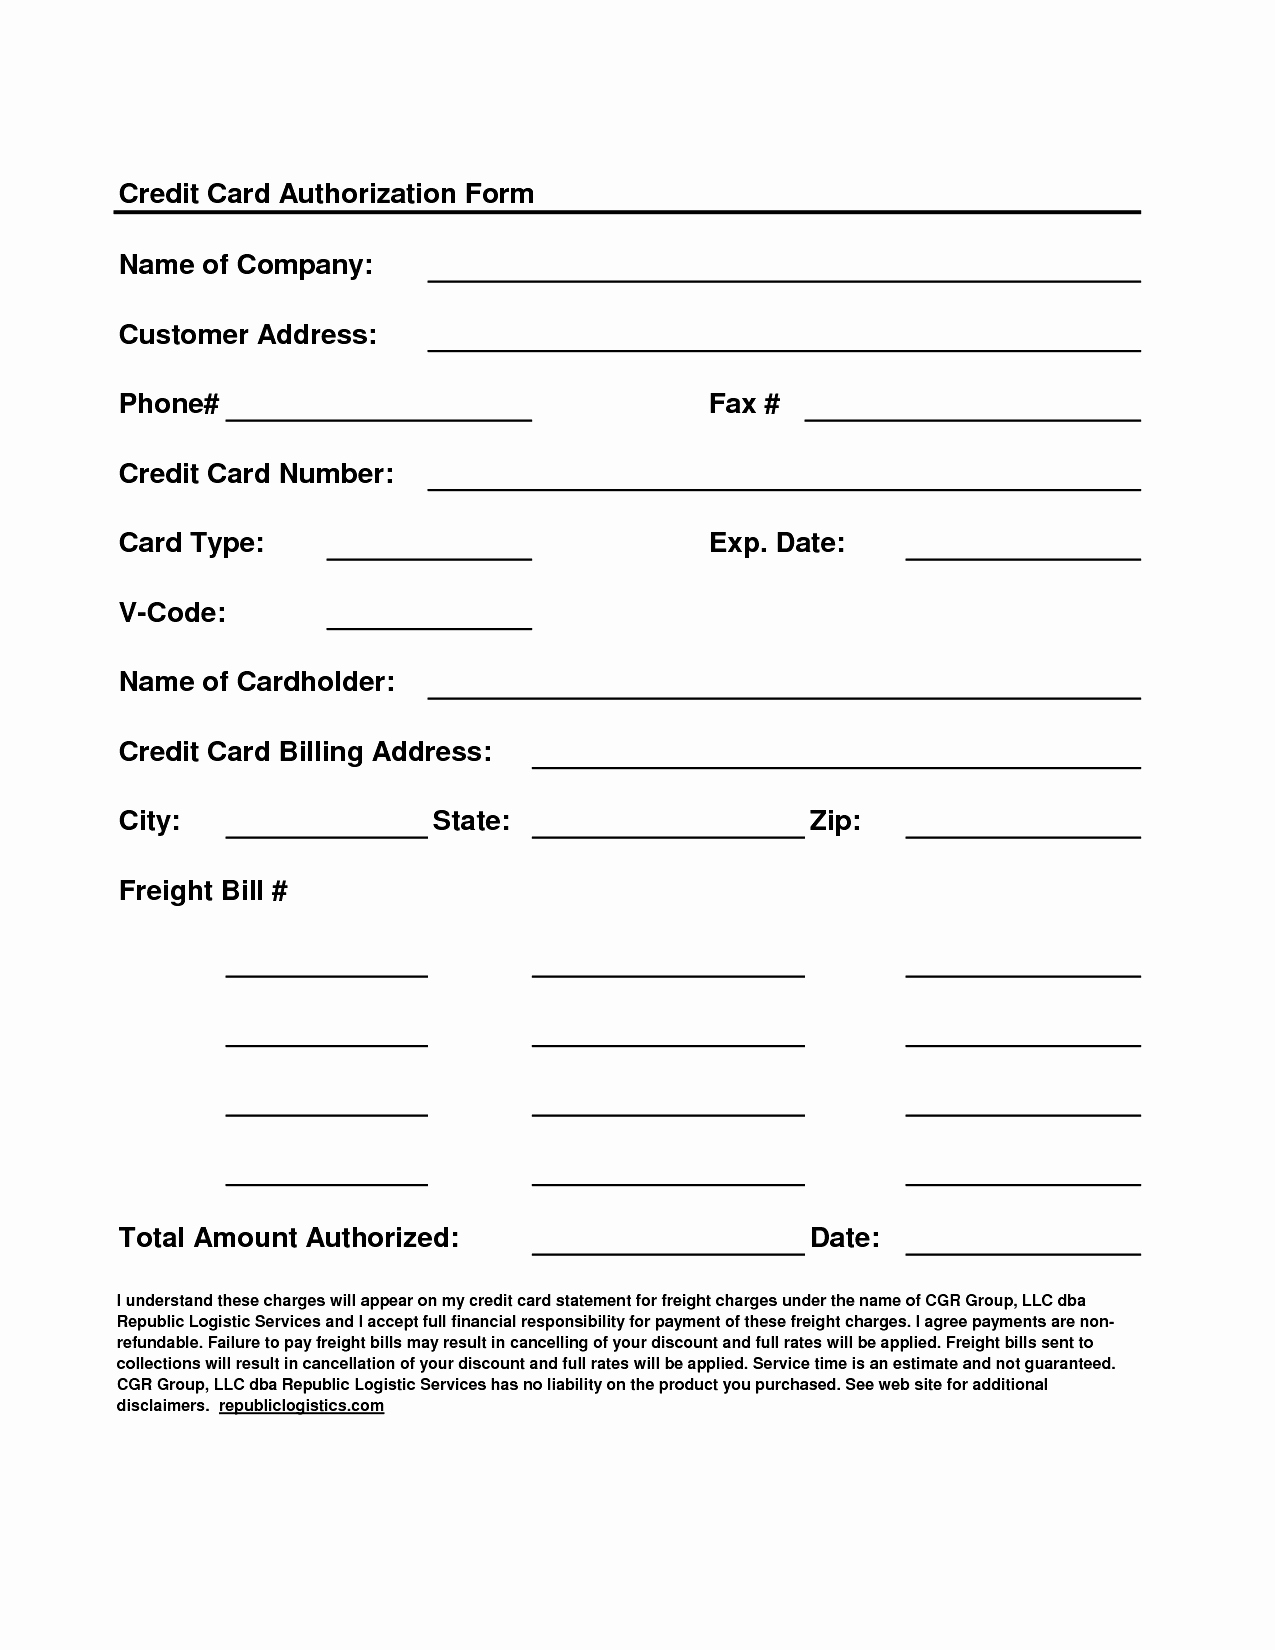 Credit Card Payment form Template Best Of Authorization form Template Example Mughals